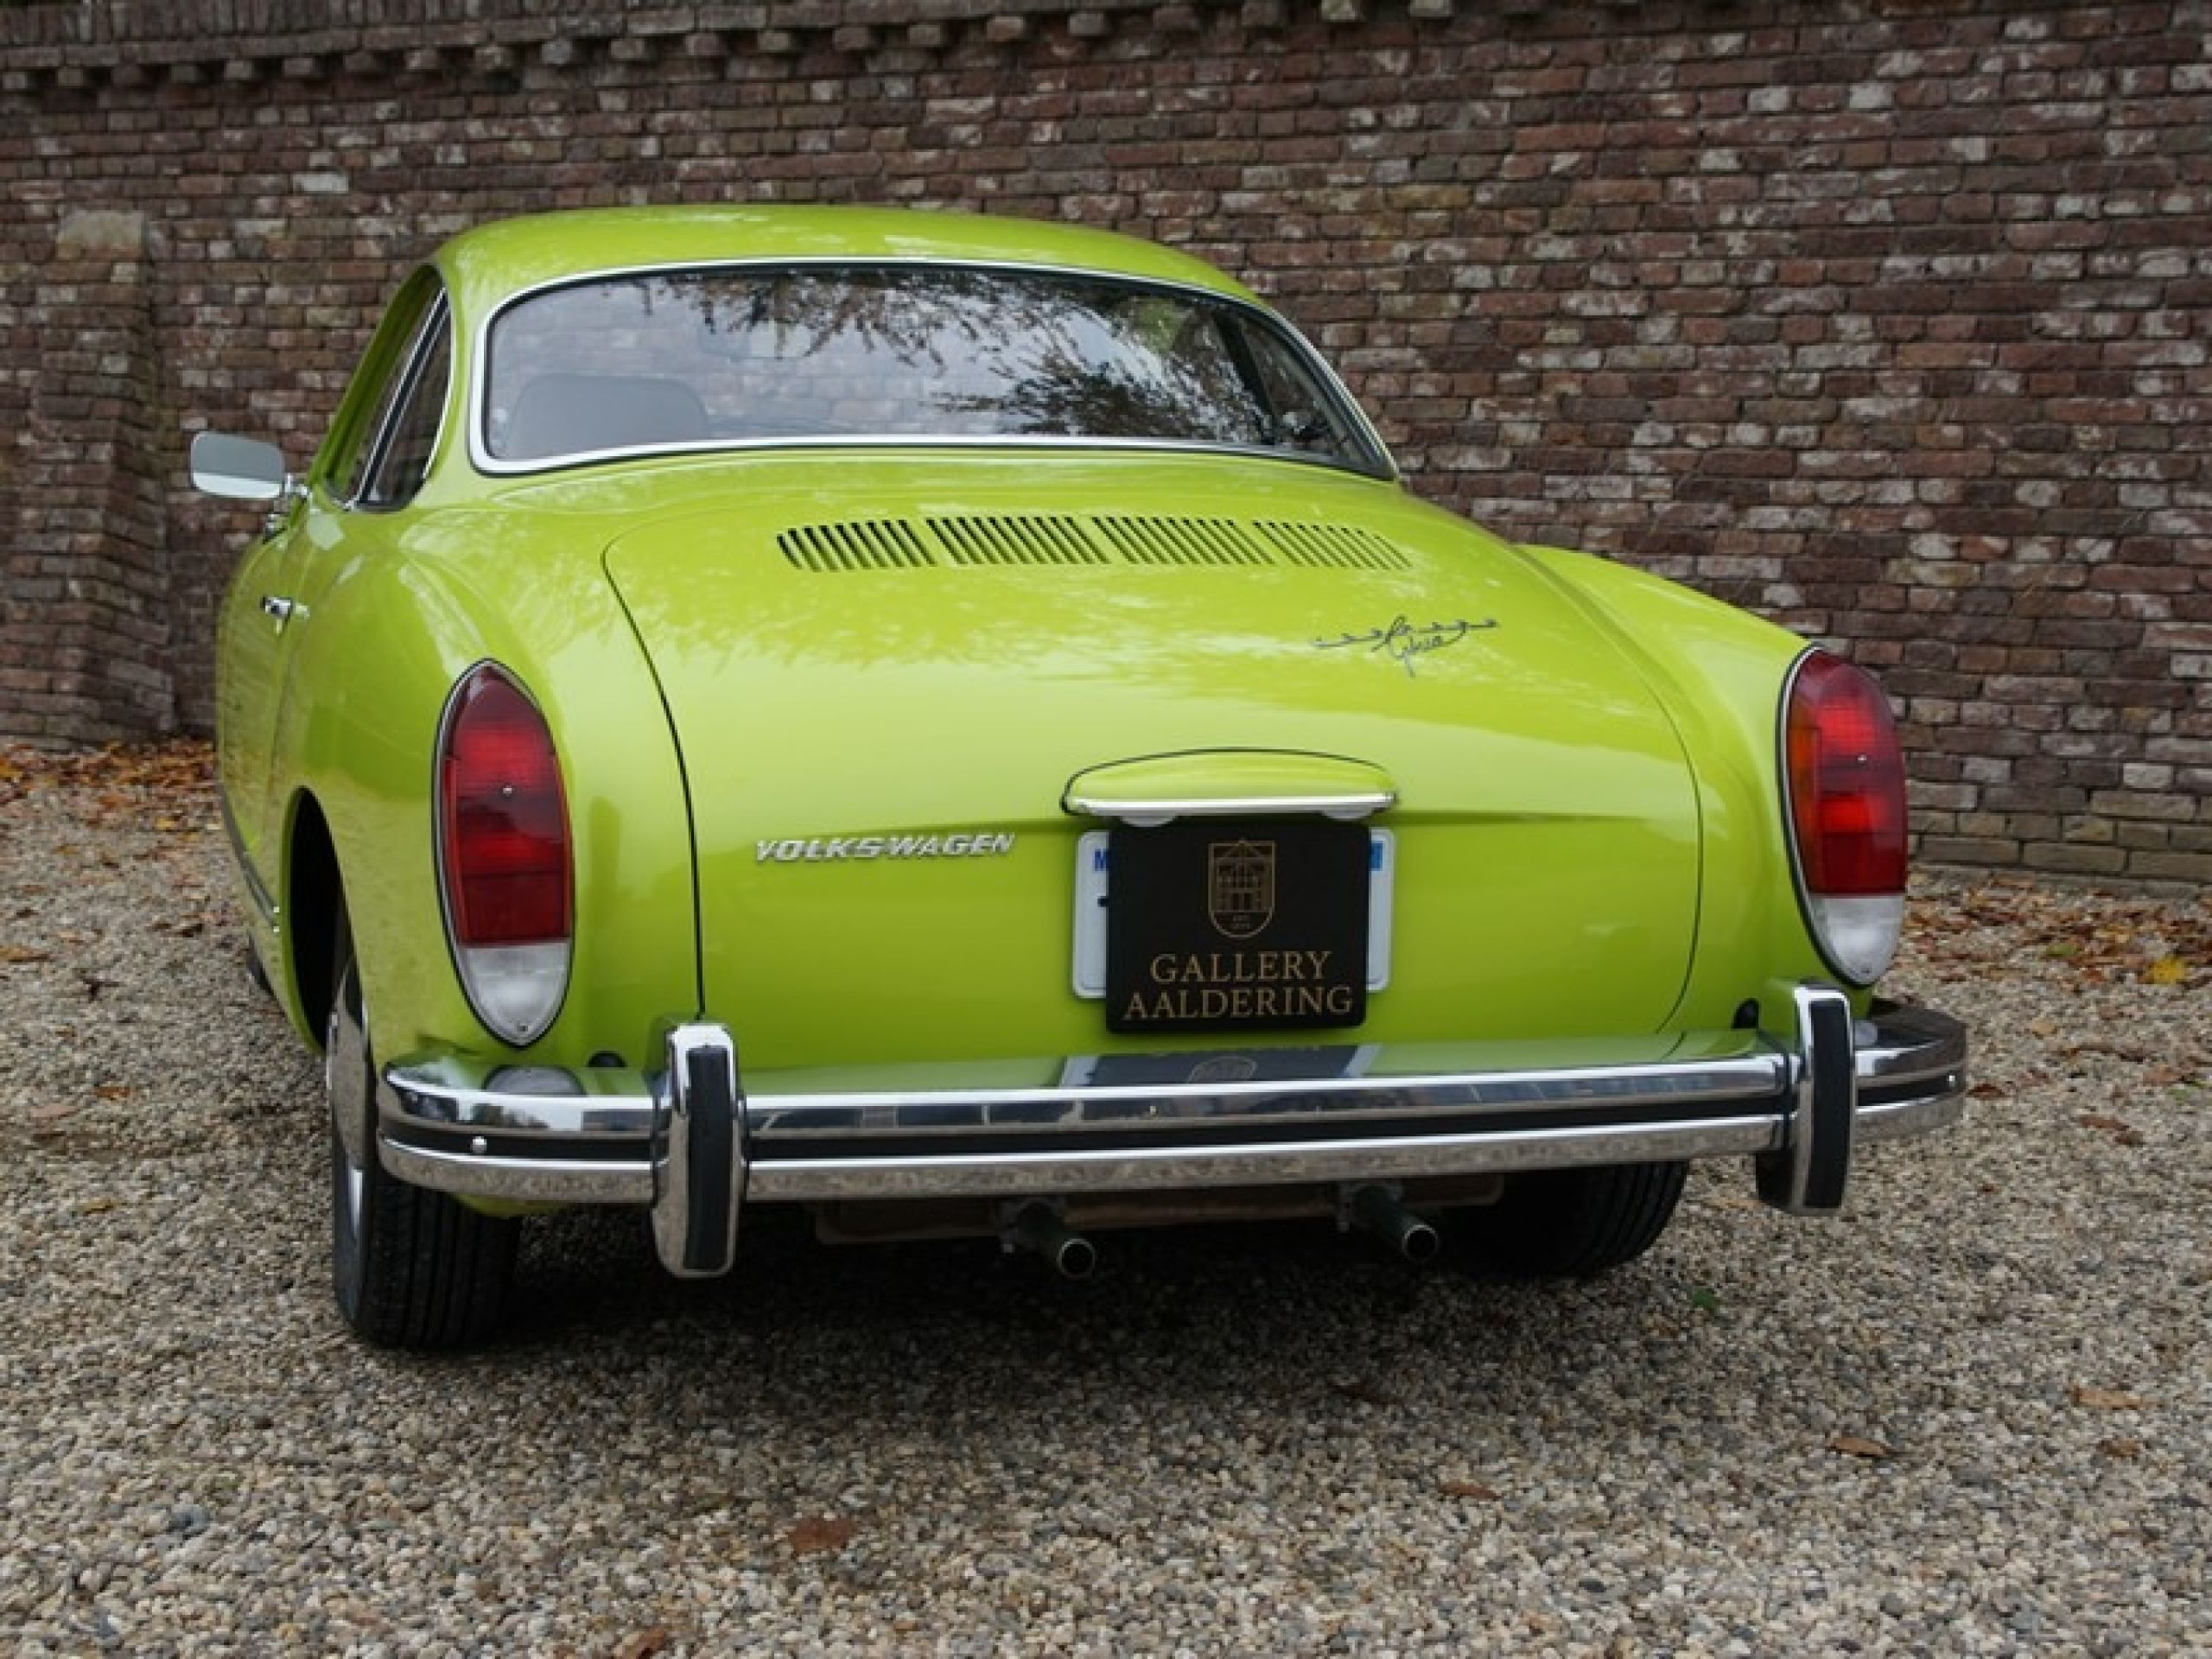 VOLKSWAGEN KARMANN GHIA COUPE ONLY 4.268 MILES, MATCHING NUM (1974)